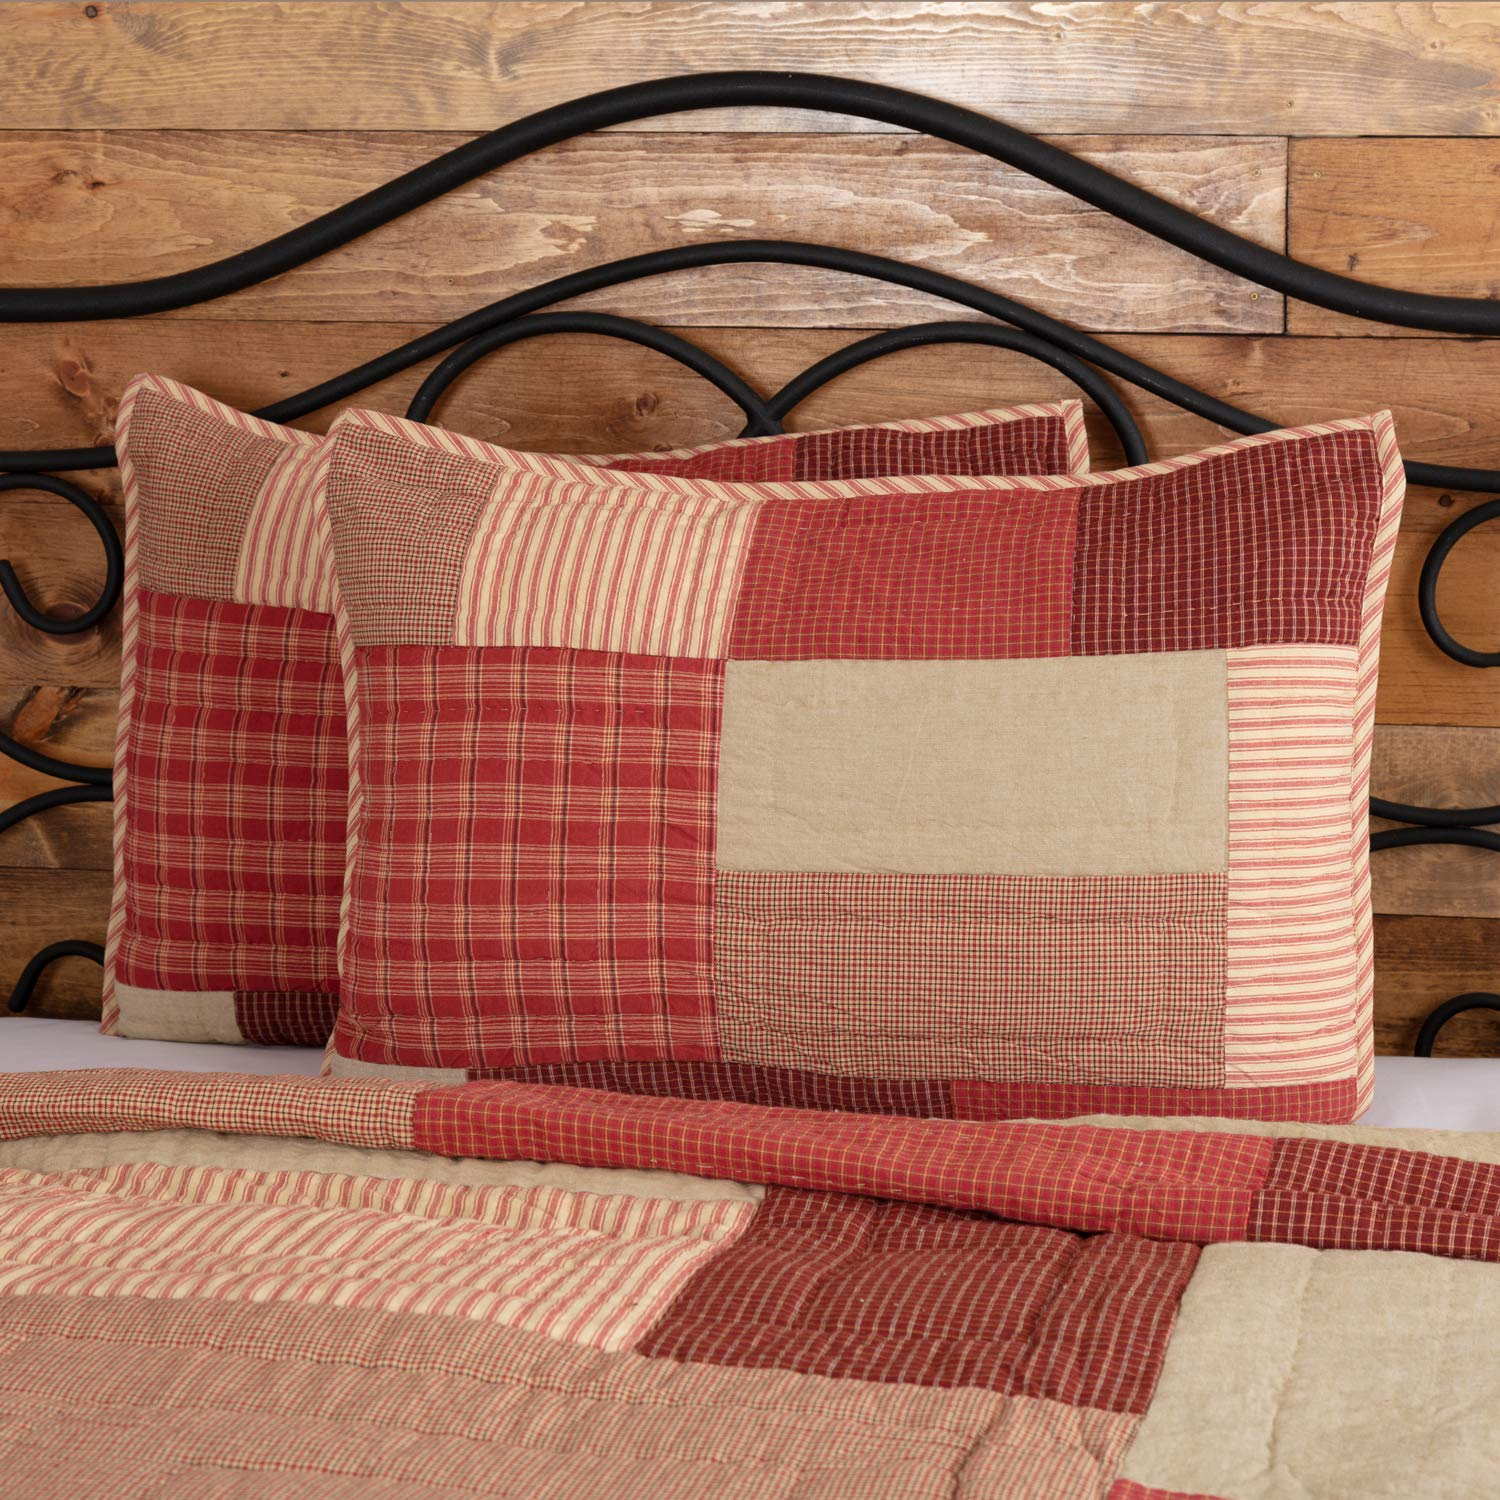 VHC Brands Farmhouse Bedding Rory Schoolhouse Red Cotton Patchwork Chambray Standard Sham Brick